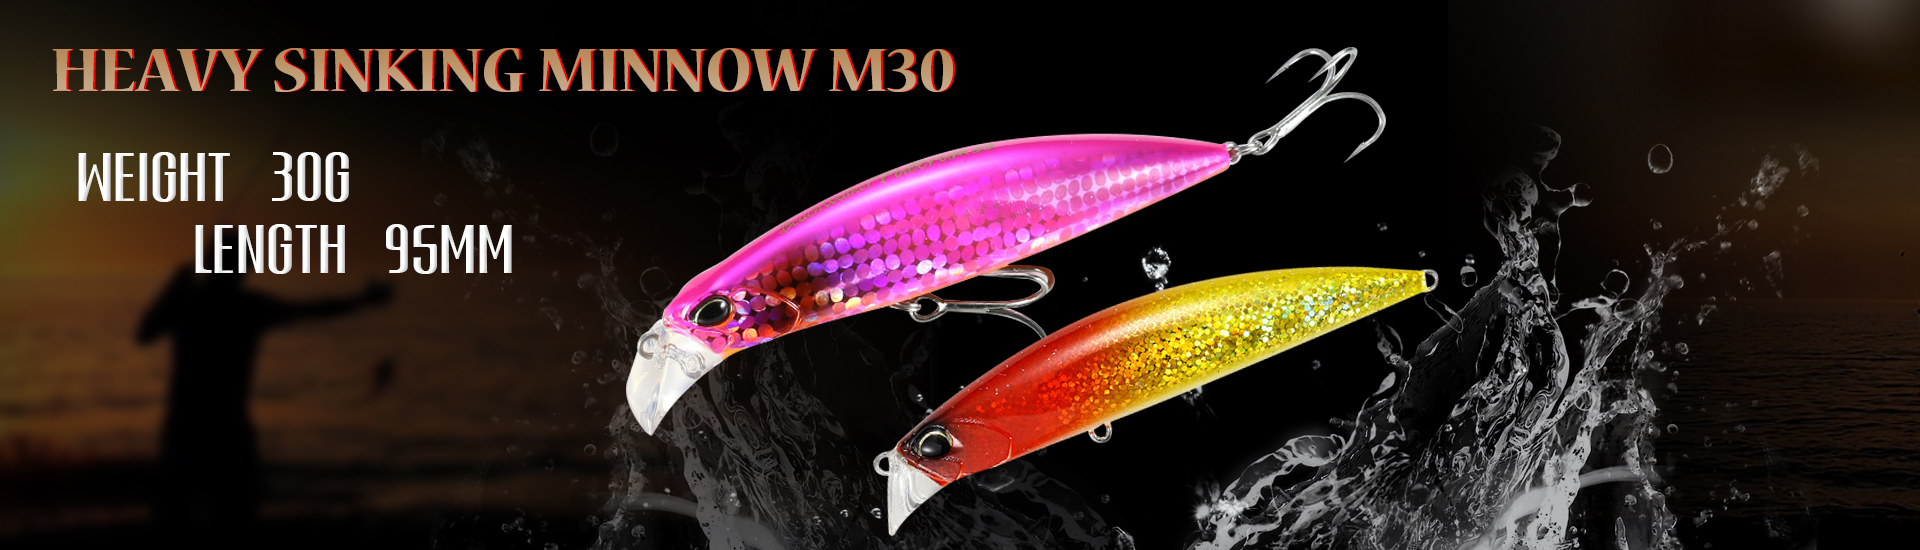 Fishing Lures Wholesale 90mm 27g Fishing Lures Bait Minnow Lure Trout Peche Artificial Hard Baits M349